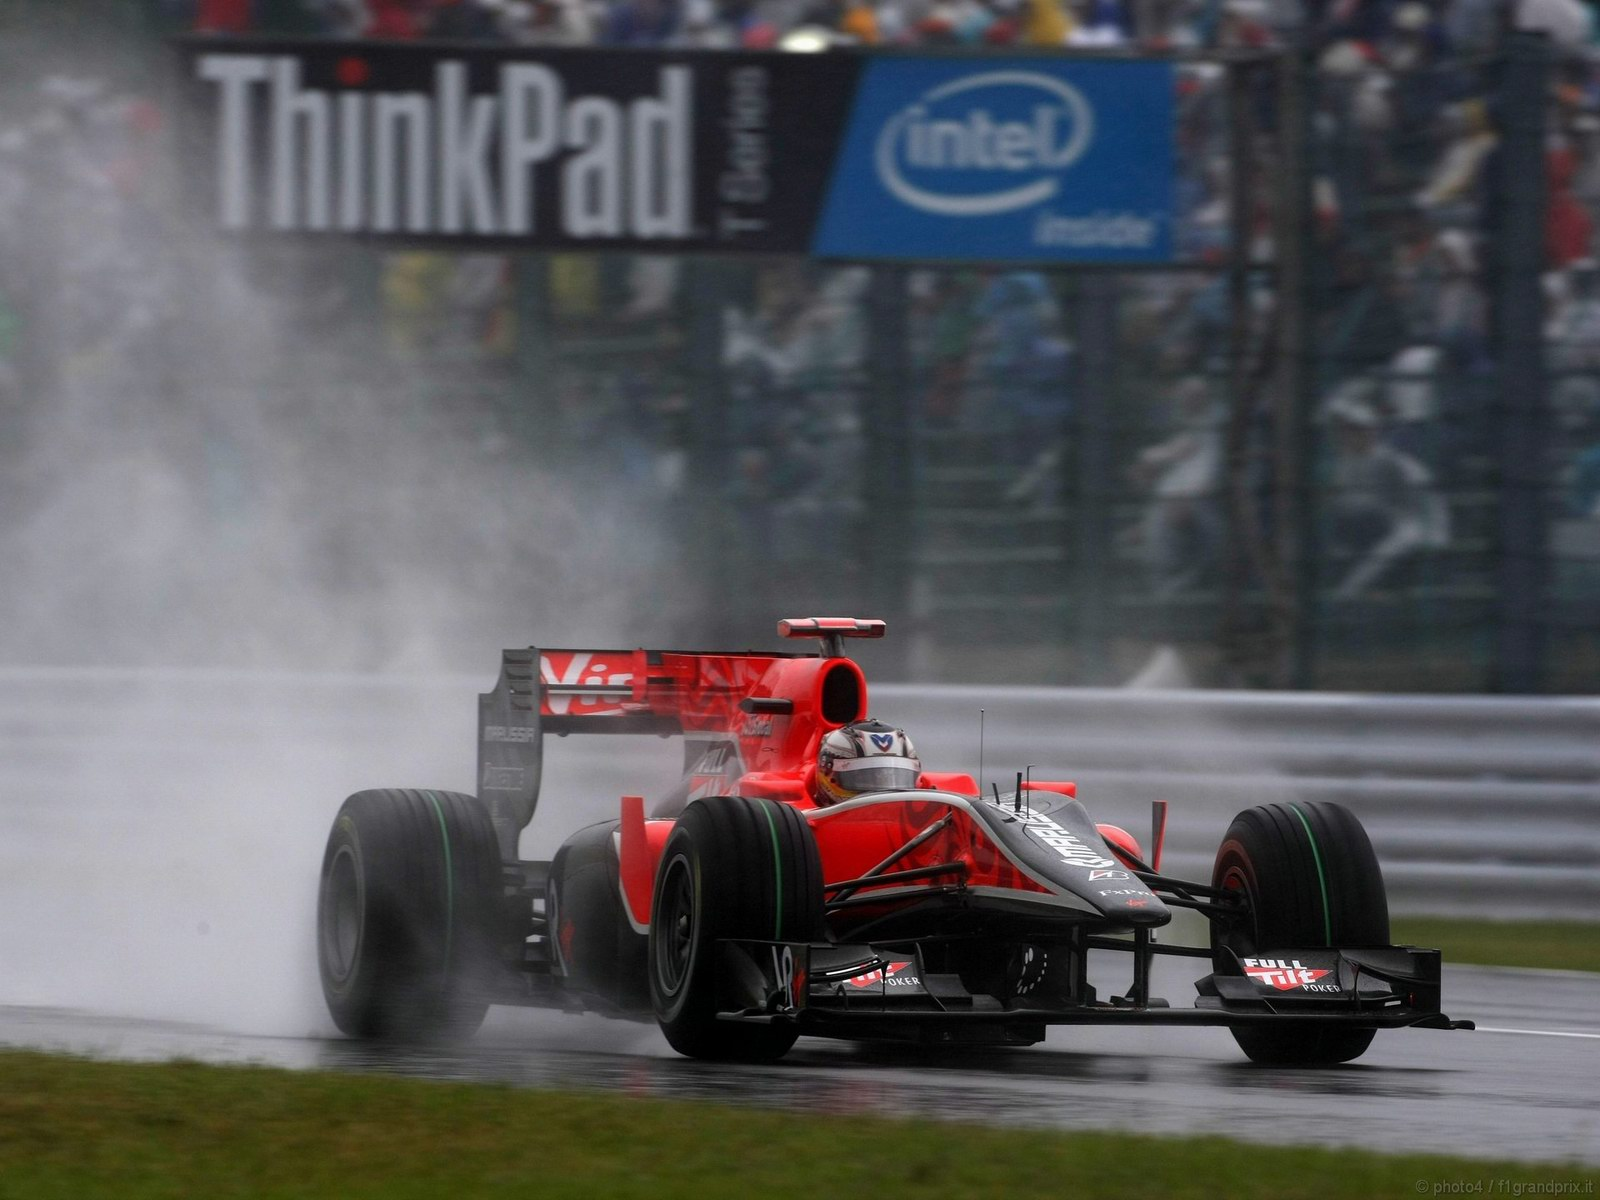 pojazdy - formula1 - gp_giappone_wallpapers_000084